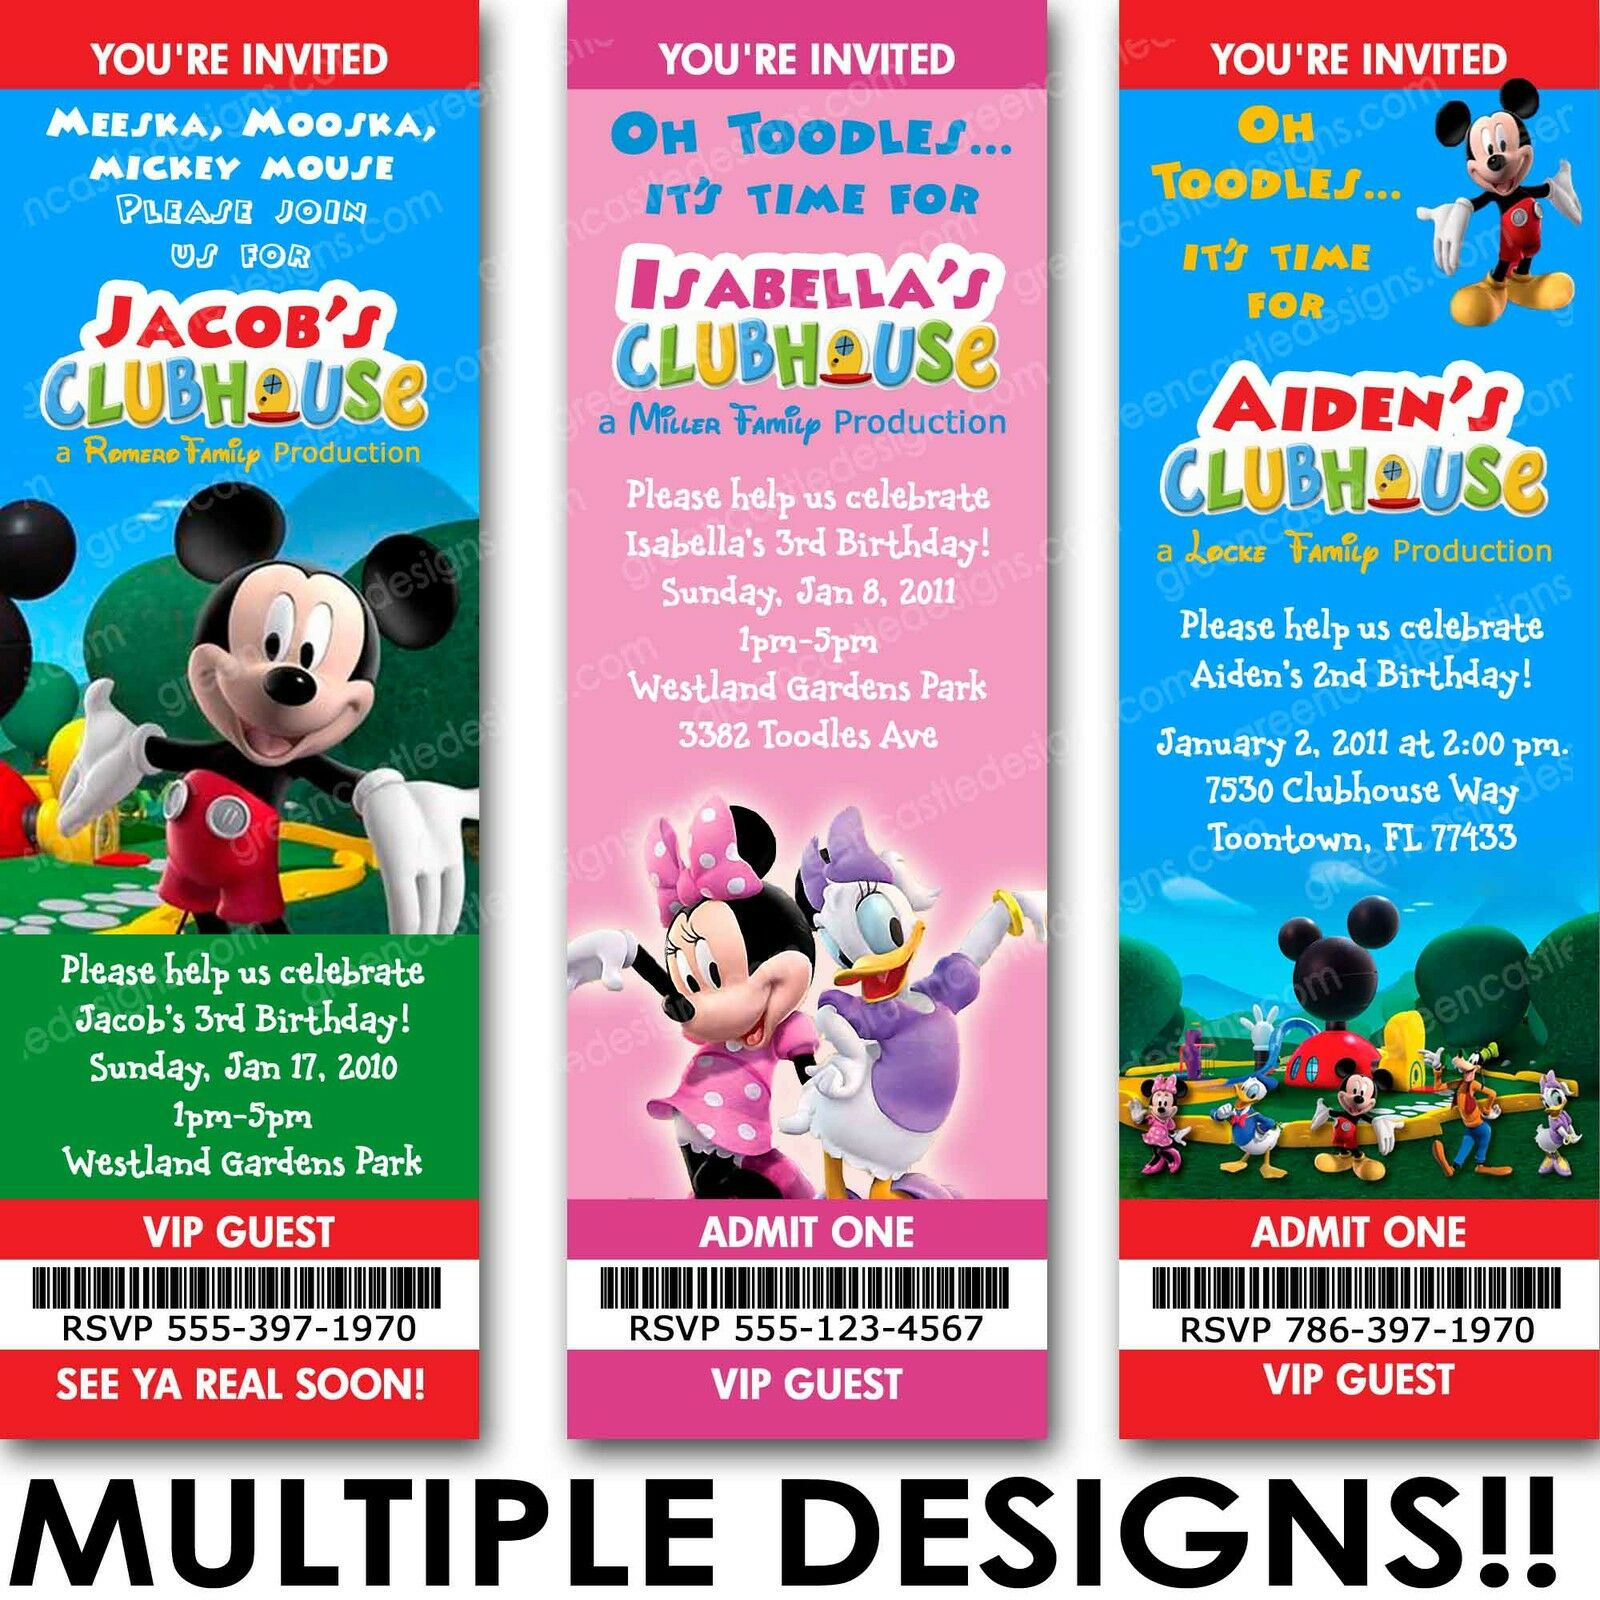 Mickey Mouse Clubhouse Birthday Party Invitations is an amazing ideas you had to choose for invitation design